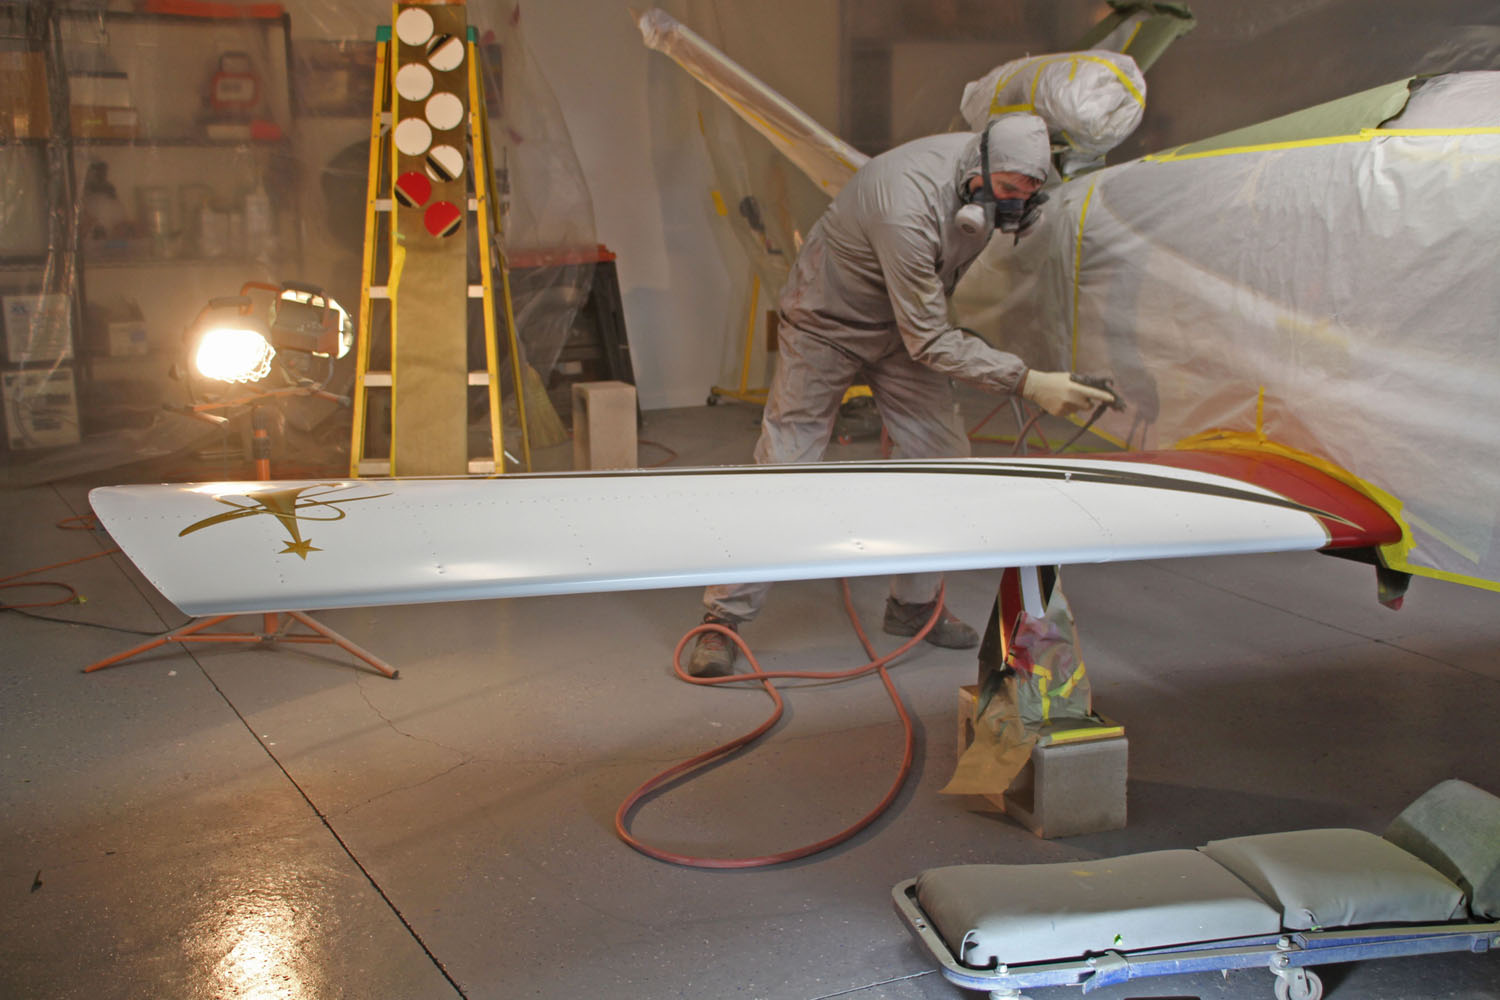 The clear coat process began with spraying inspection plates hanging on a board and then coating the wings.